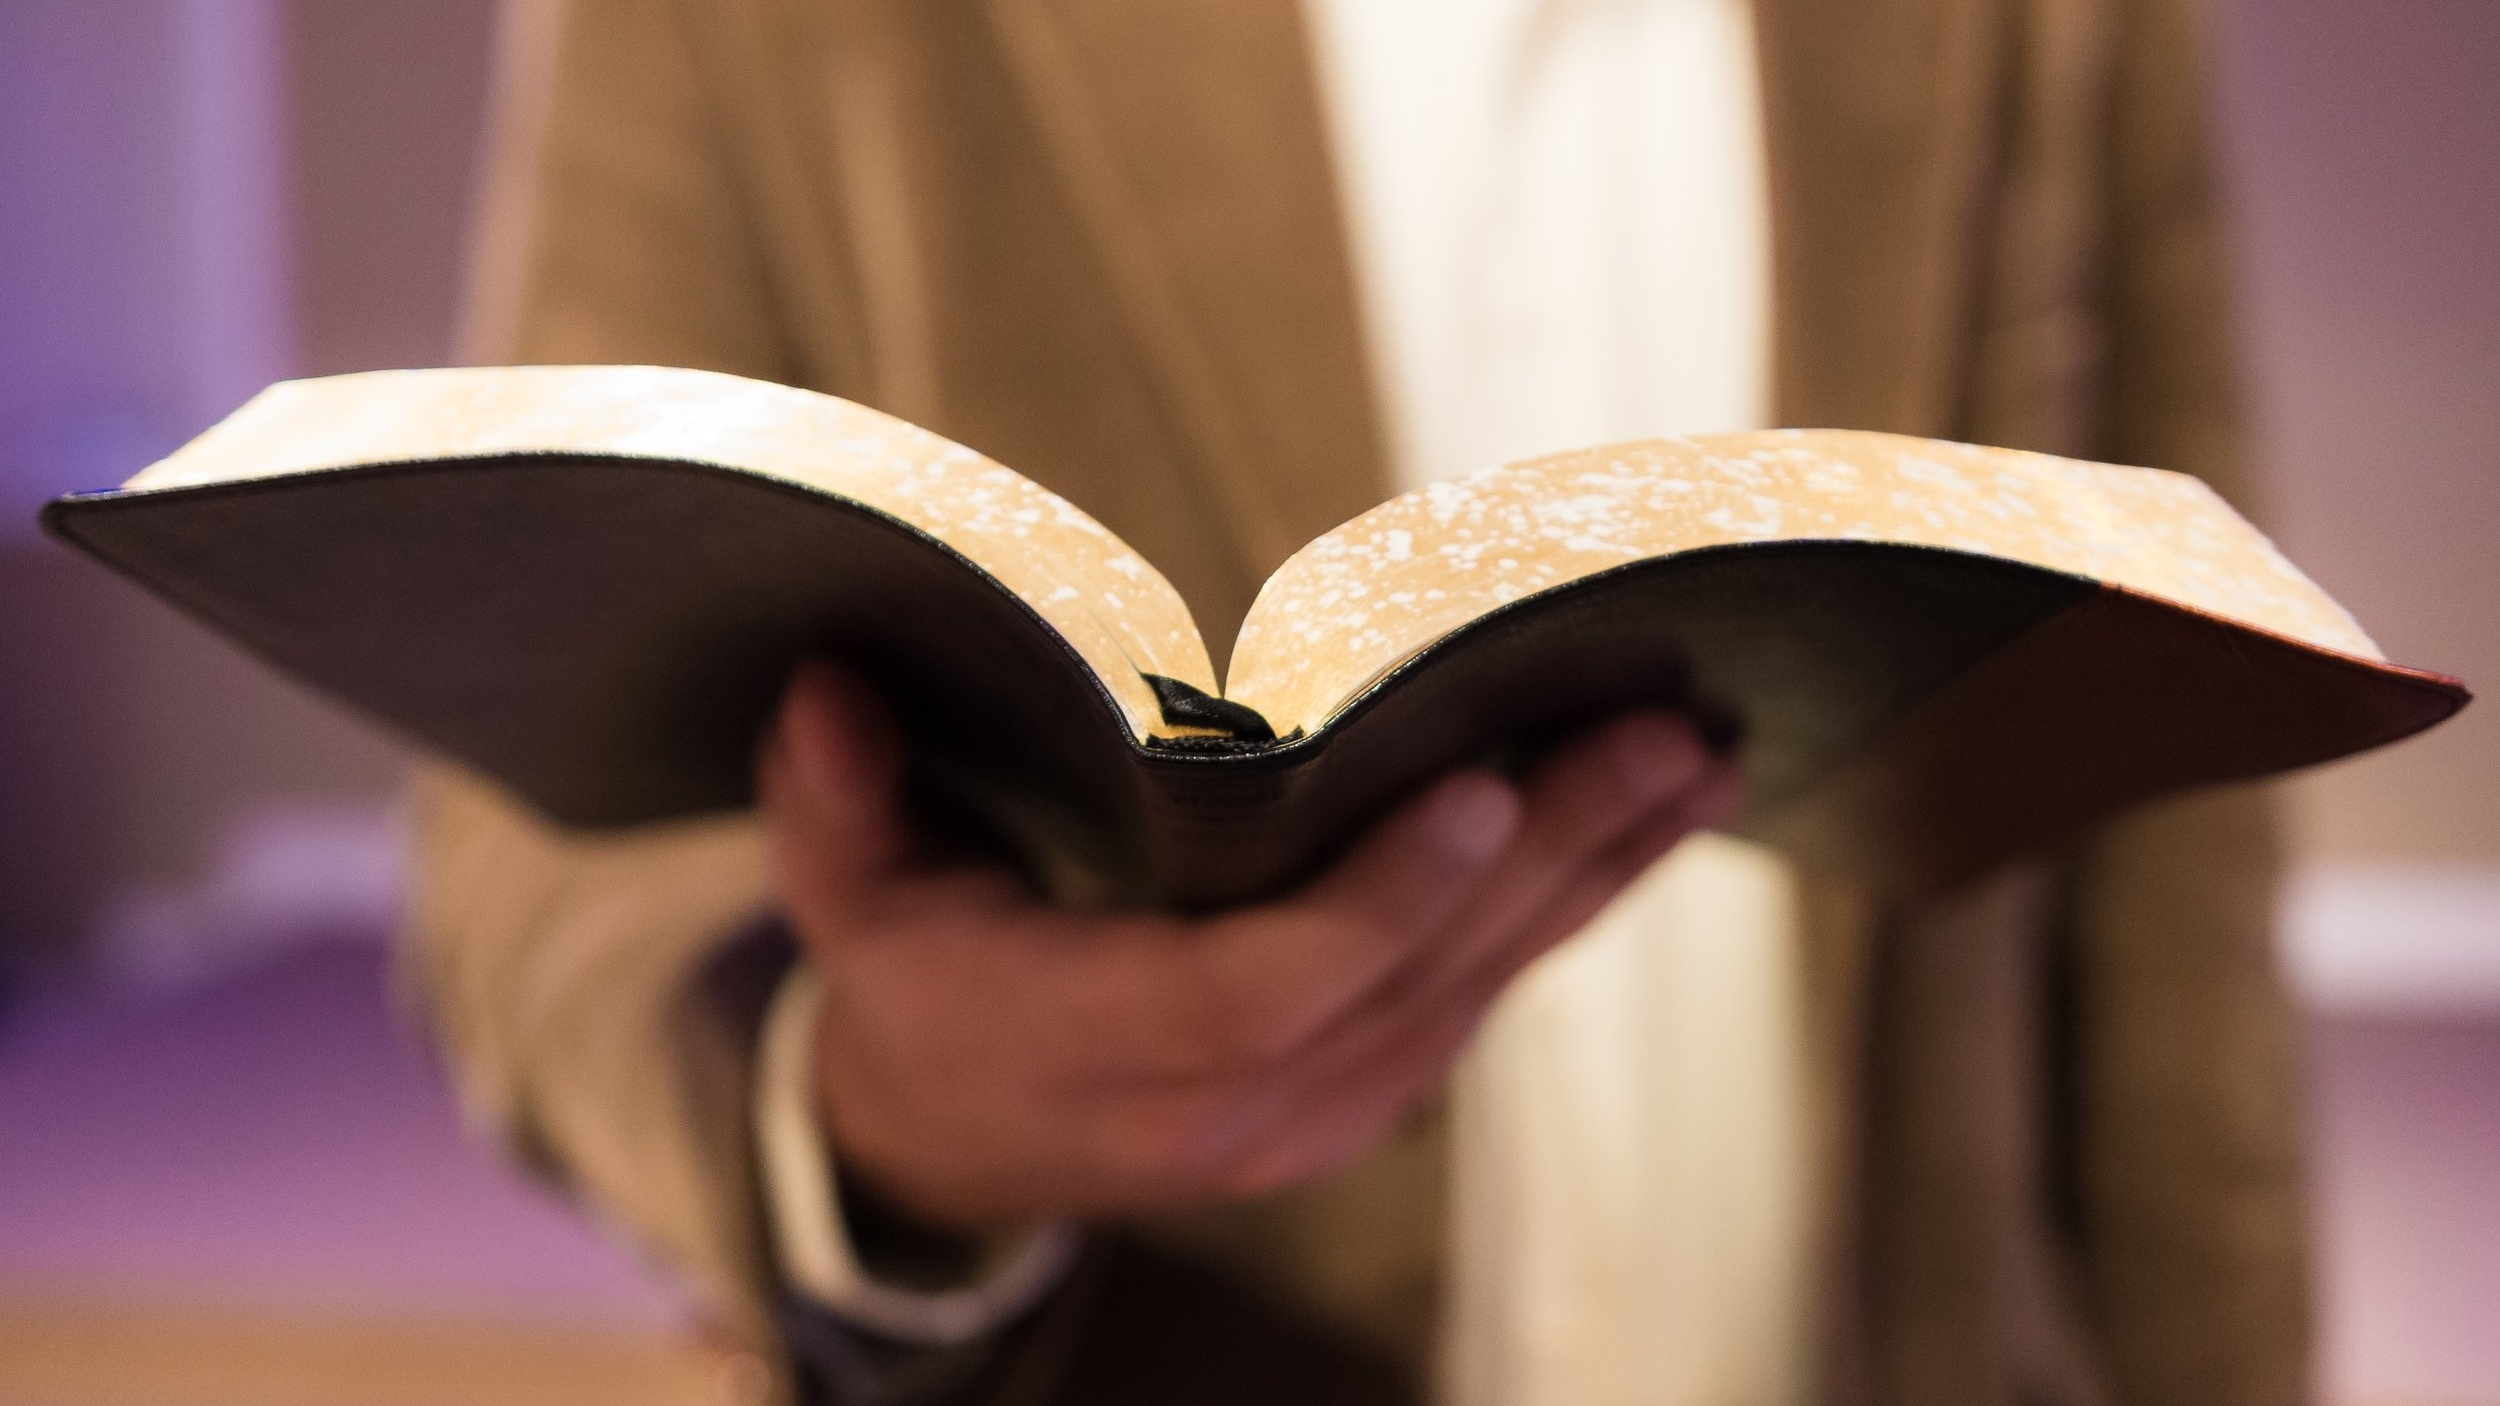 Expository preaching from God's Word -